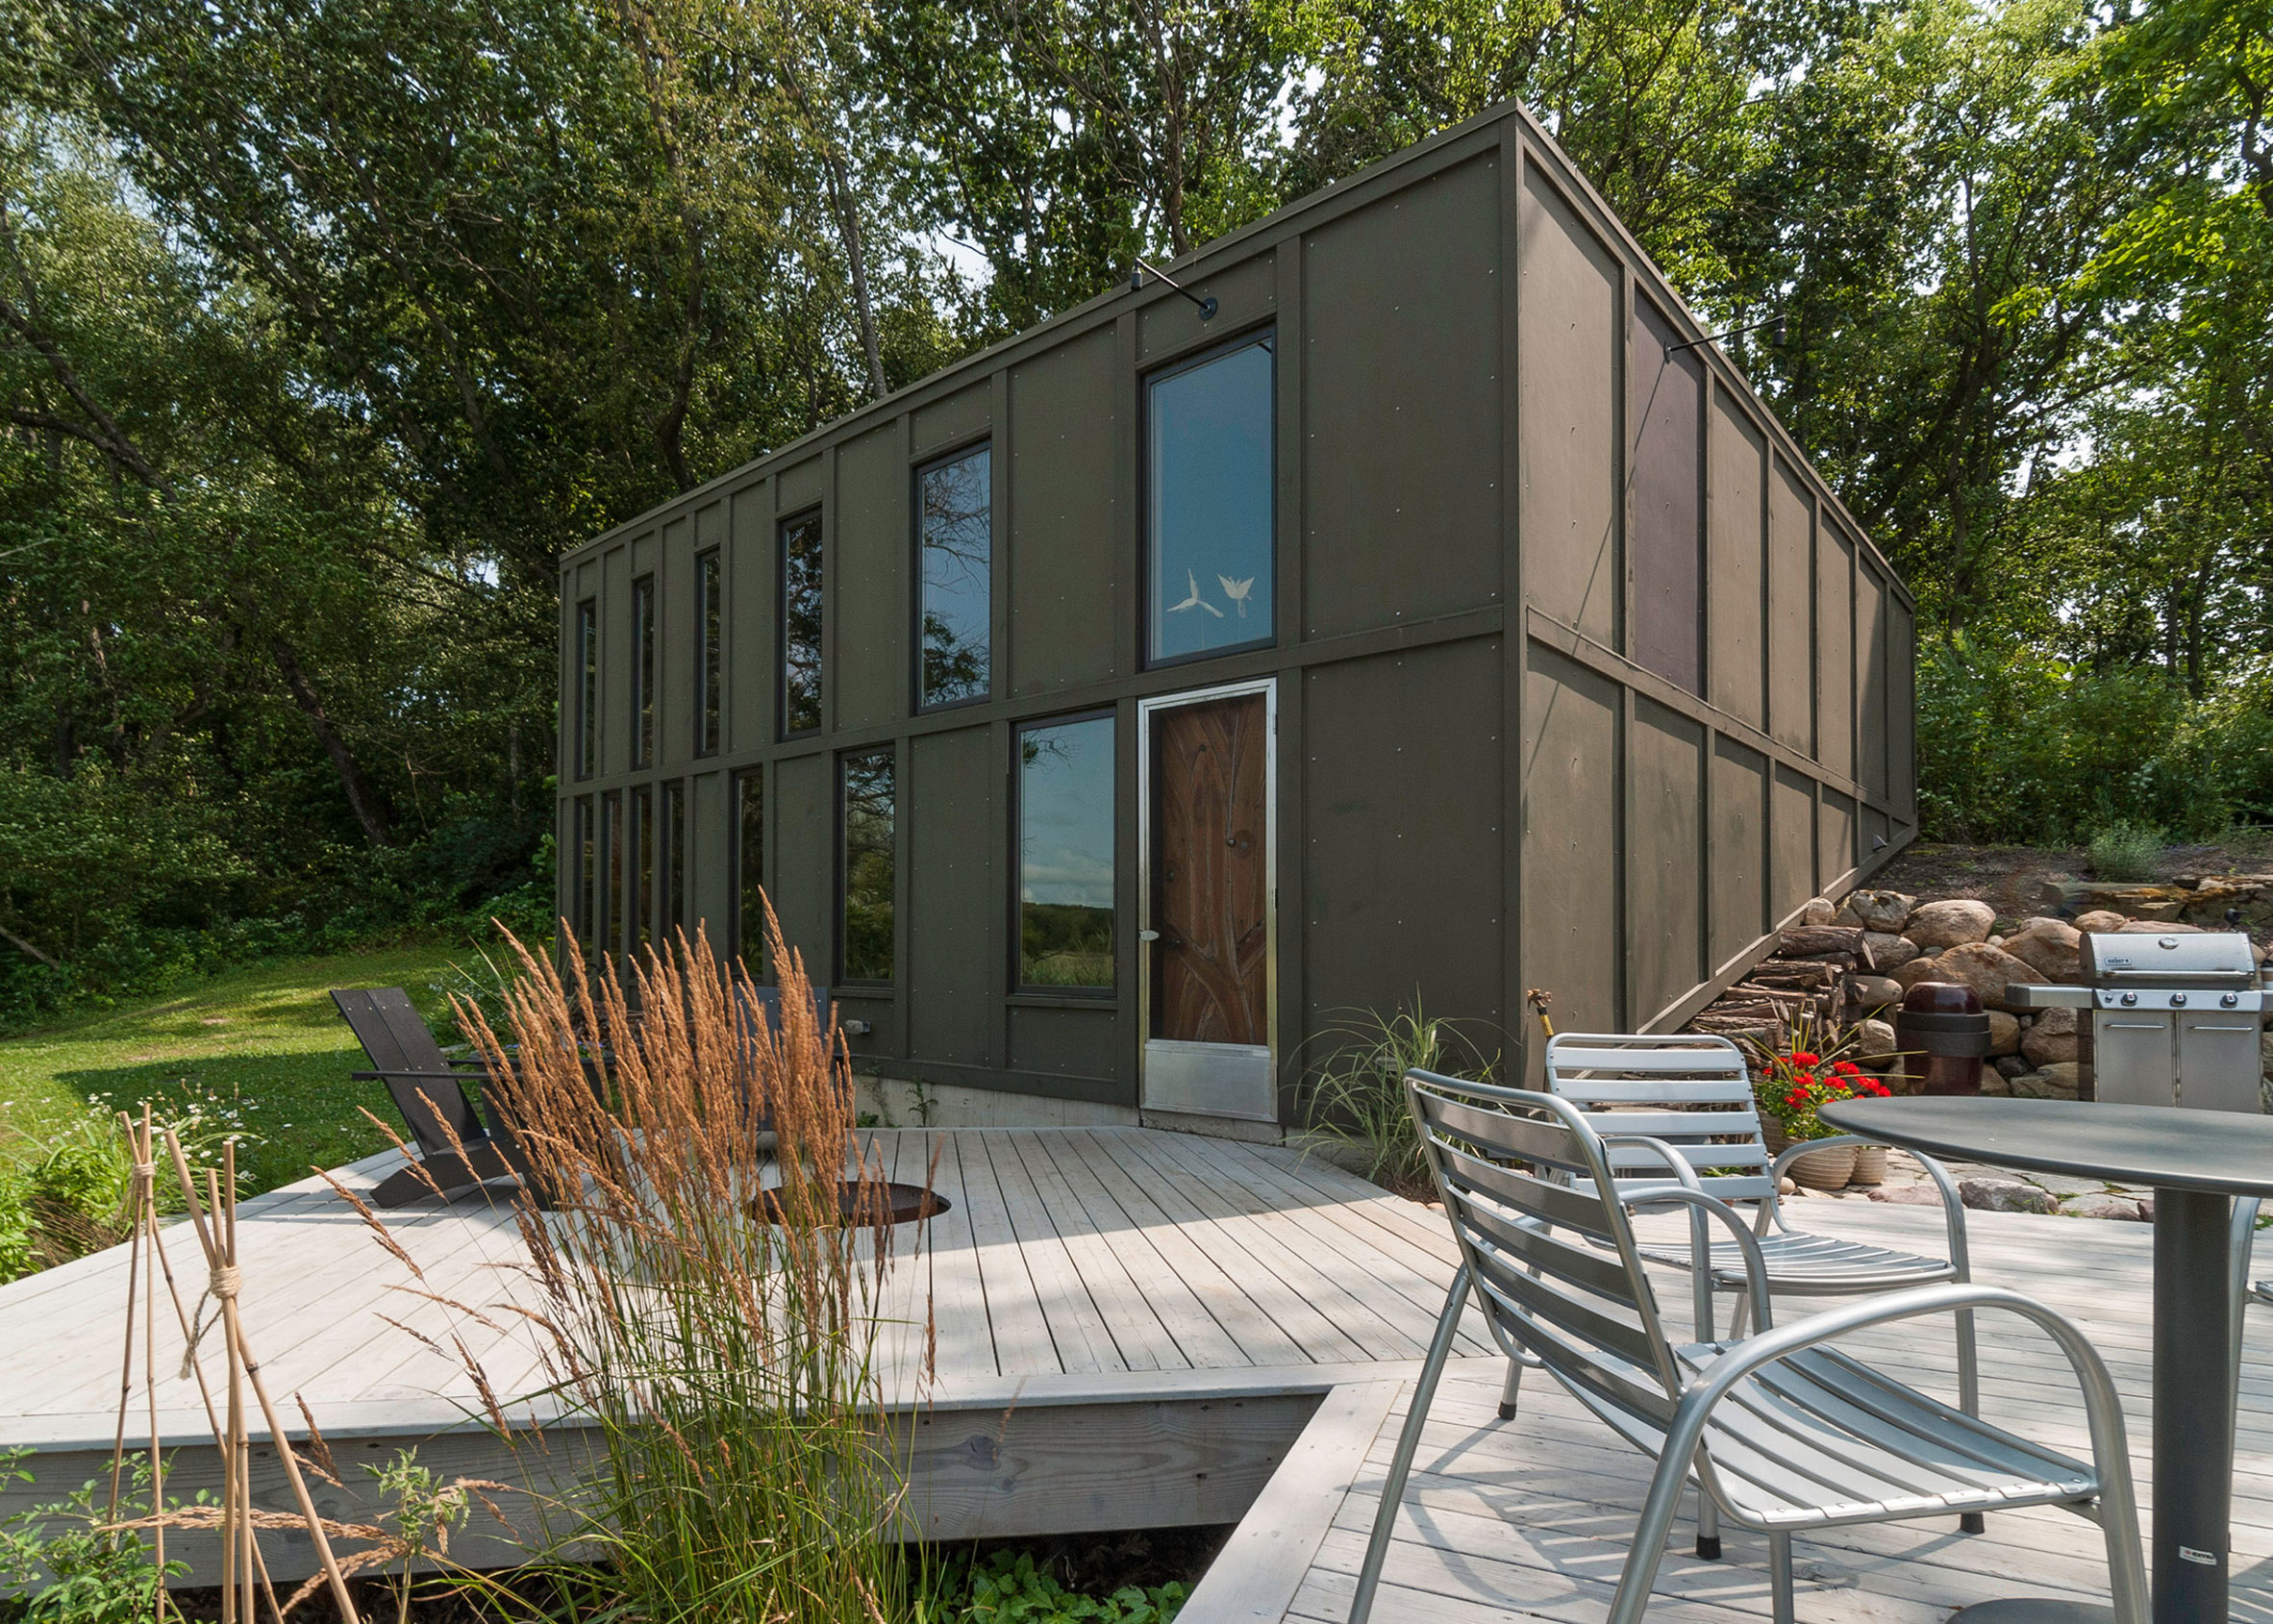 The Box by Bamesberger Architecture